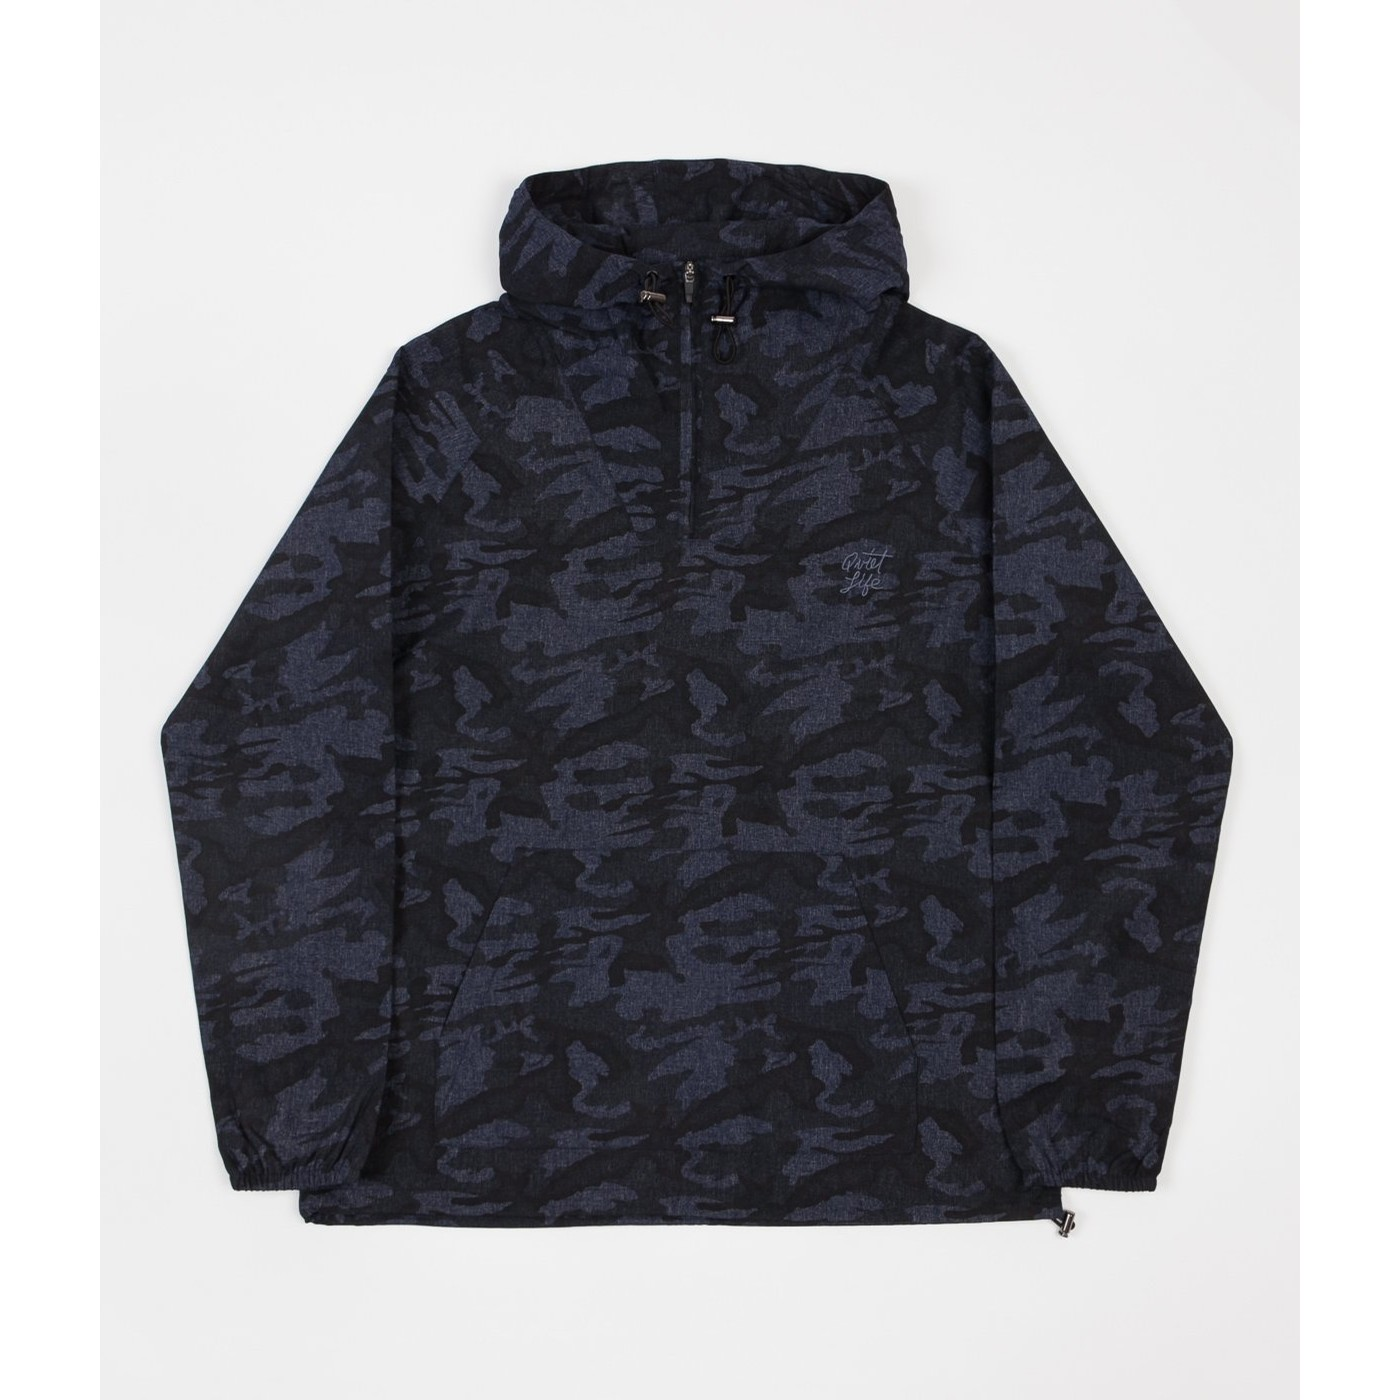 Camo Pull Over Jacket (Black)